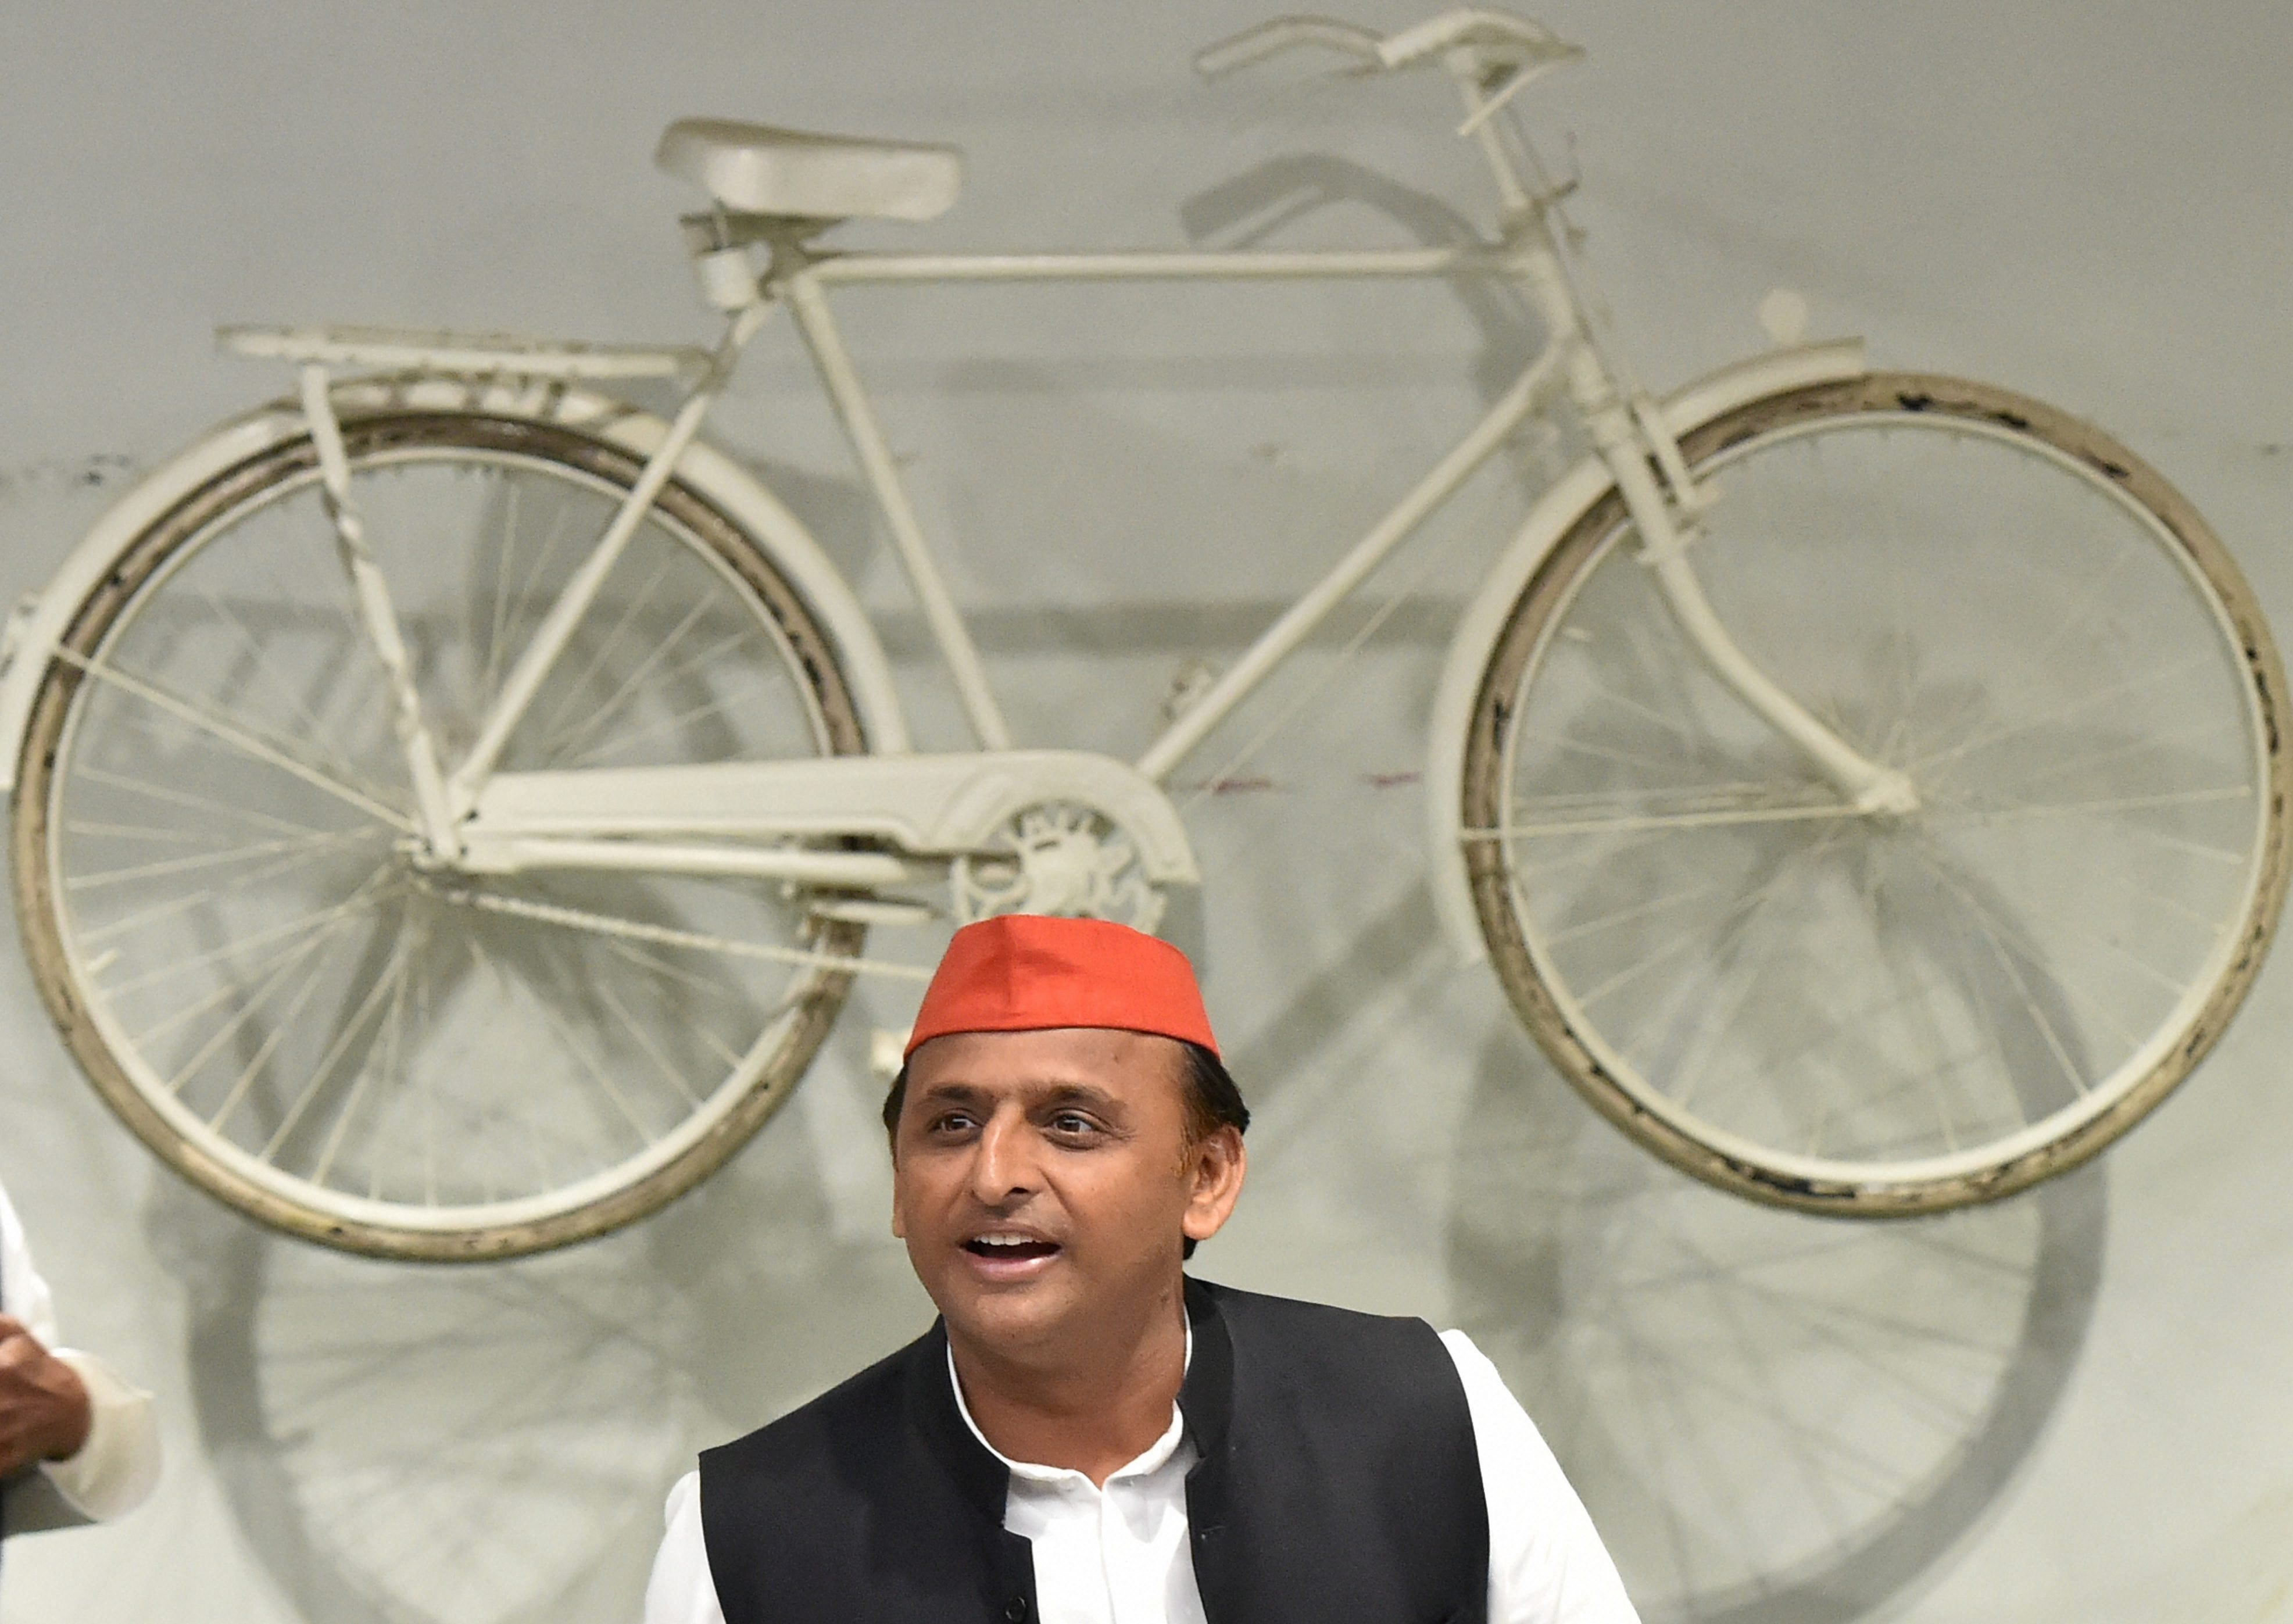 Uttar Pradesh Chief Minister Akhilesh Yadav addresses a press conference at party headquarters in Lucknow on Friday. Credit: PTI Photo by Nand Kumar